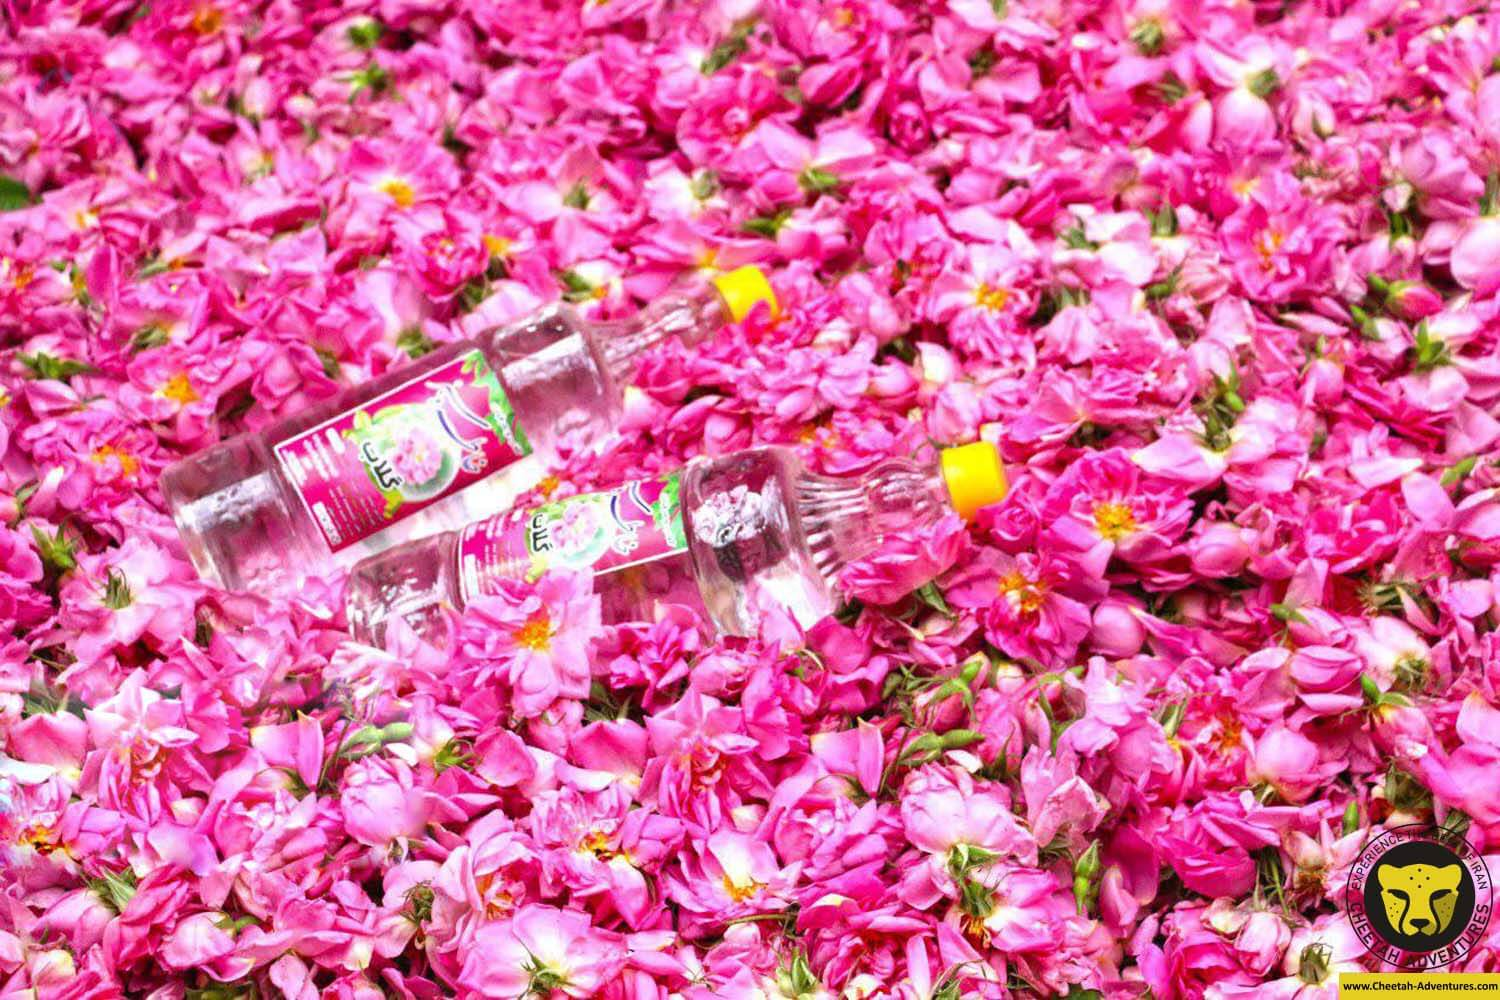 golab giri kashan rose water souvenir iran tour package